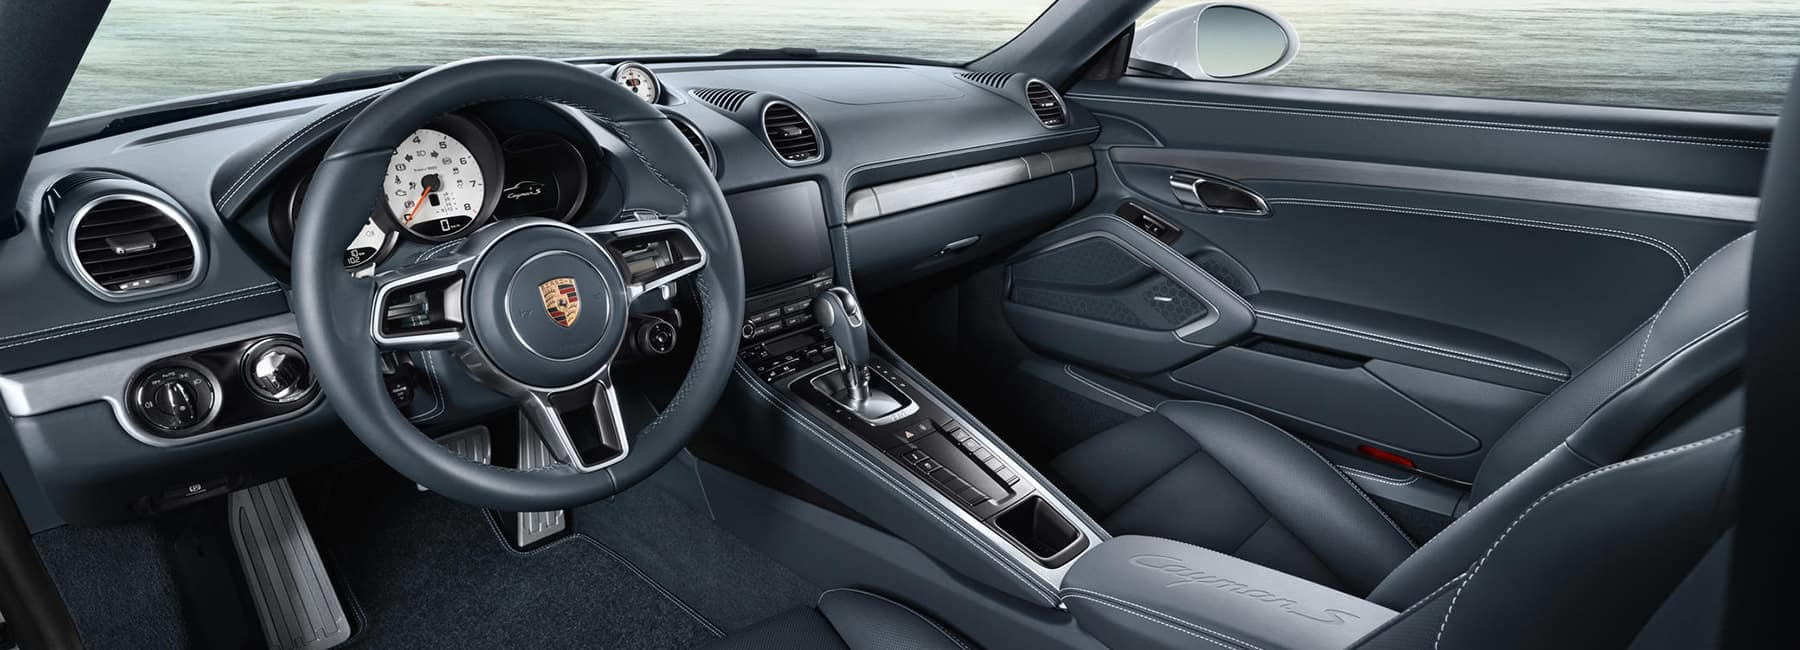 2019 Cayman Interior